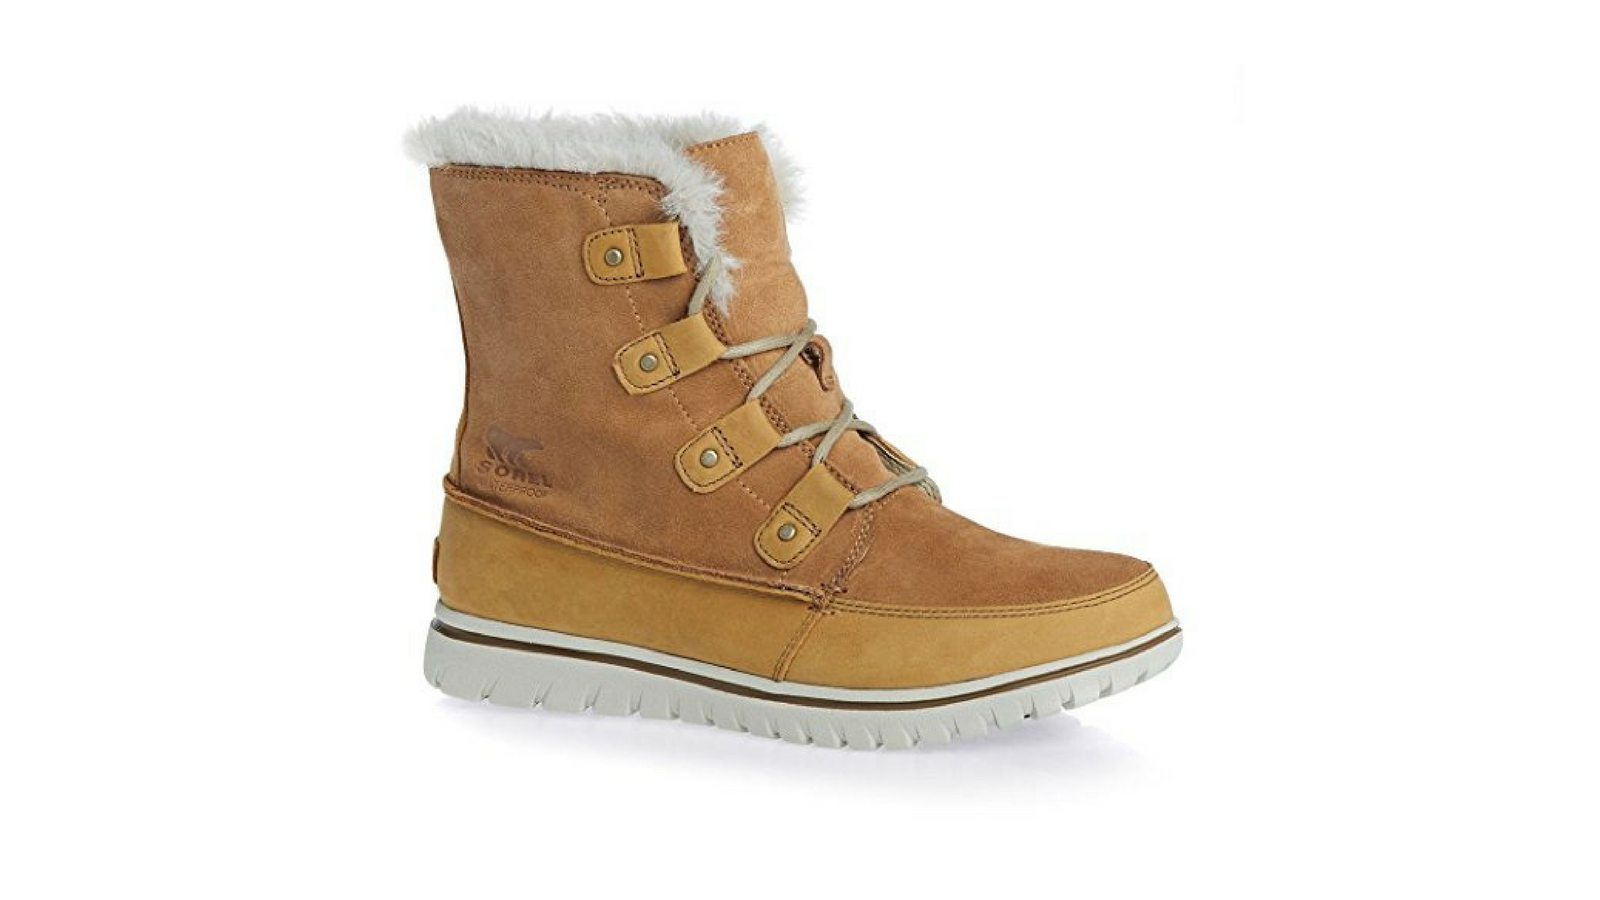 292adee1ce28 Sorel s much-loved snow boots are a safe bet for any winter adventures.  Designed in Canada